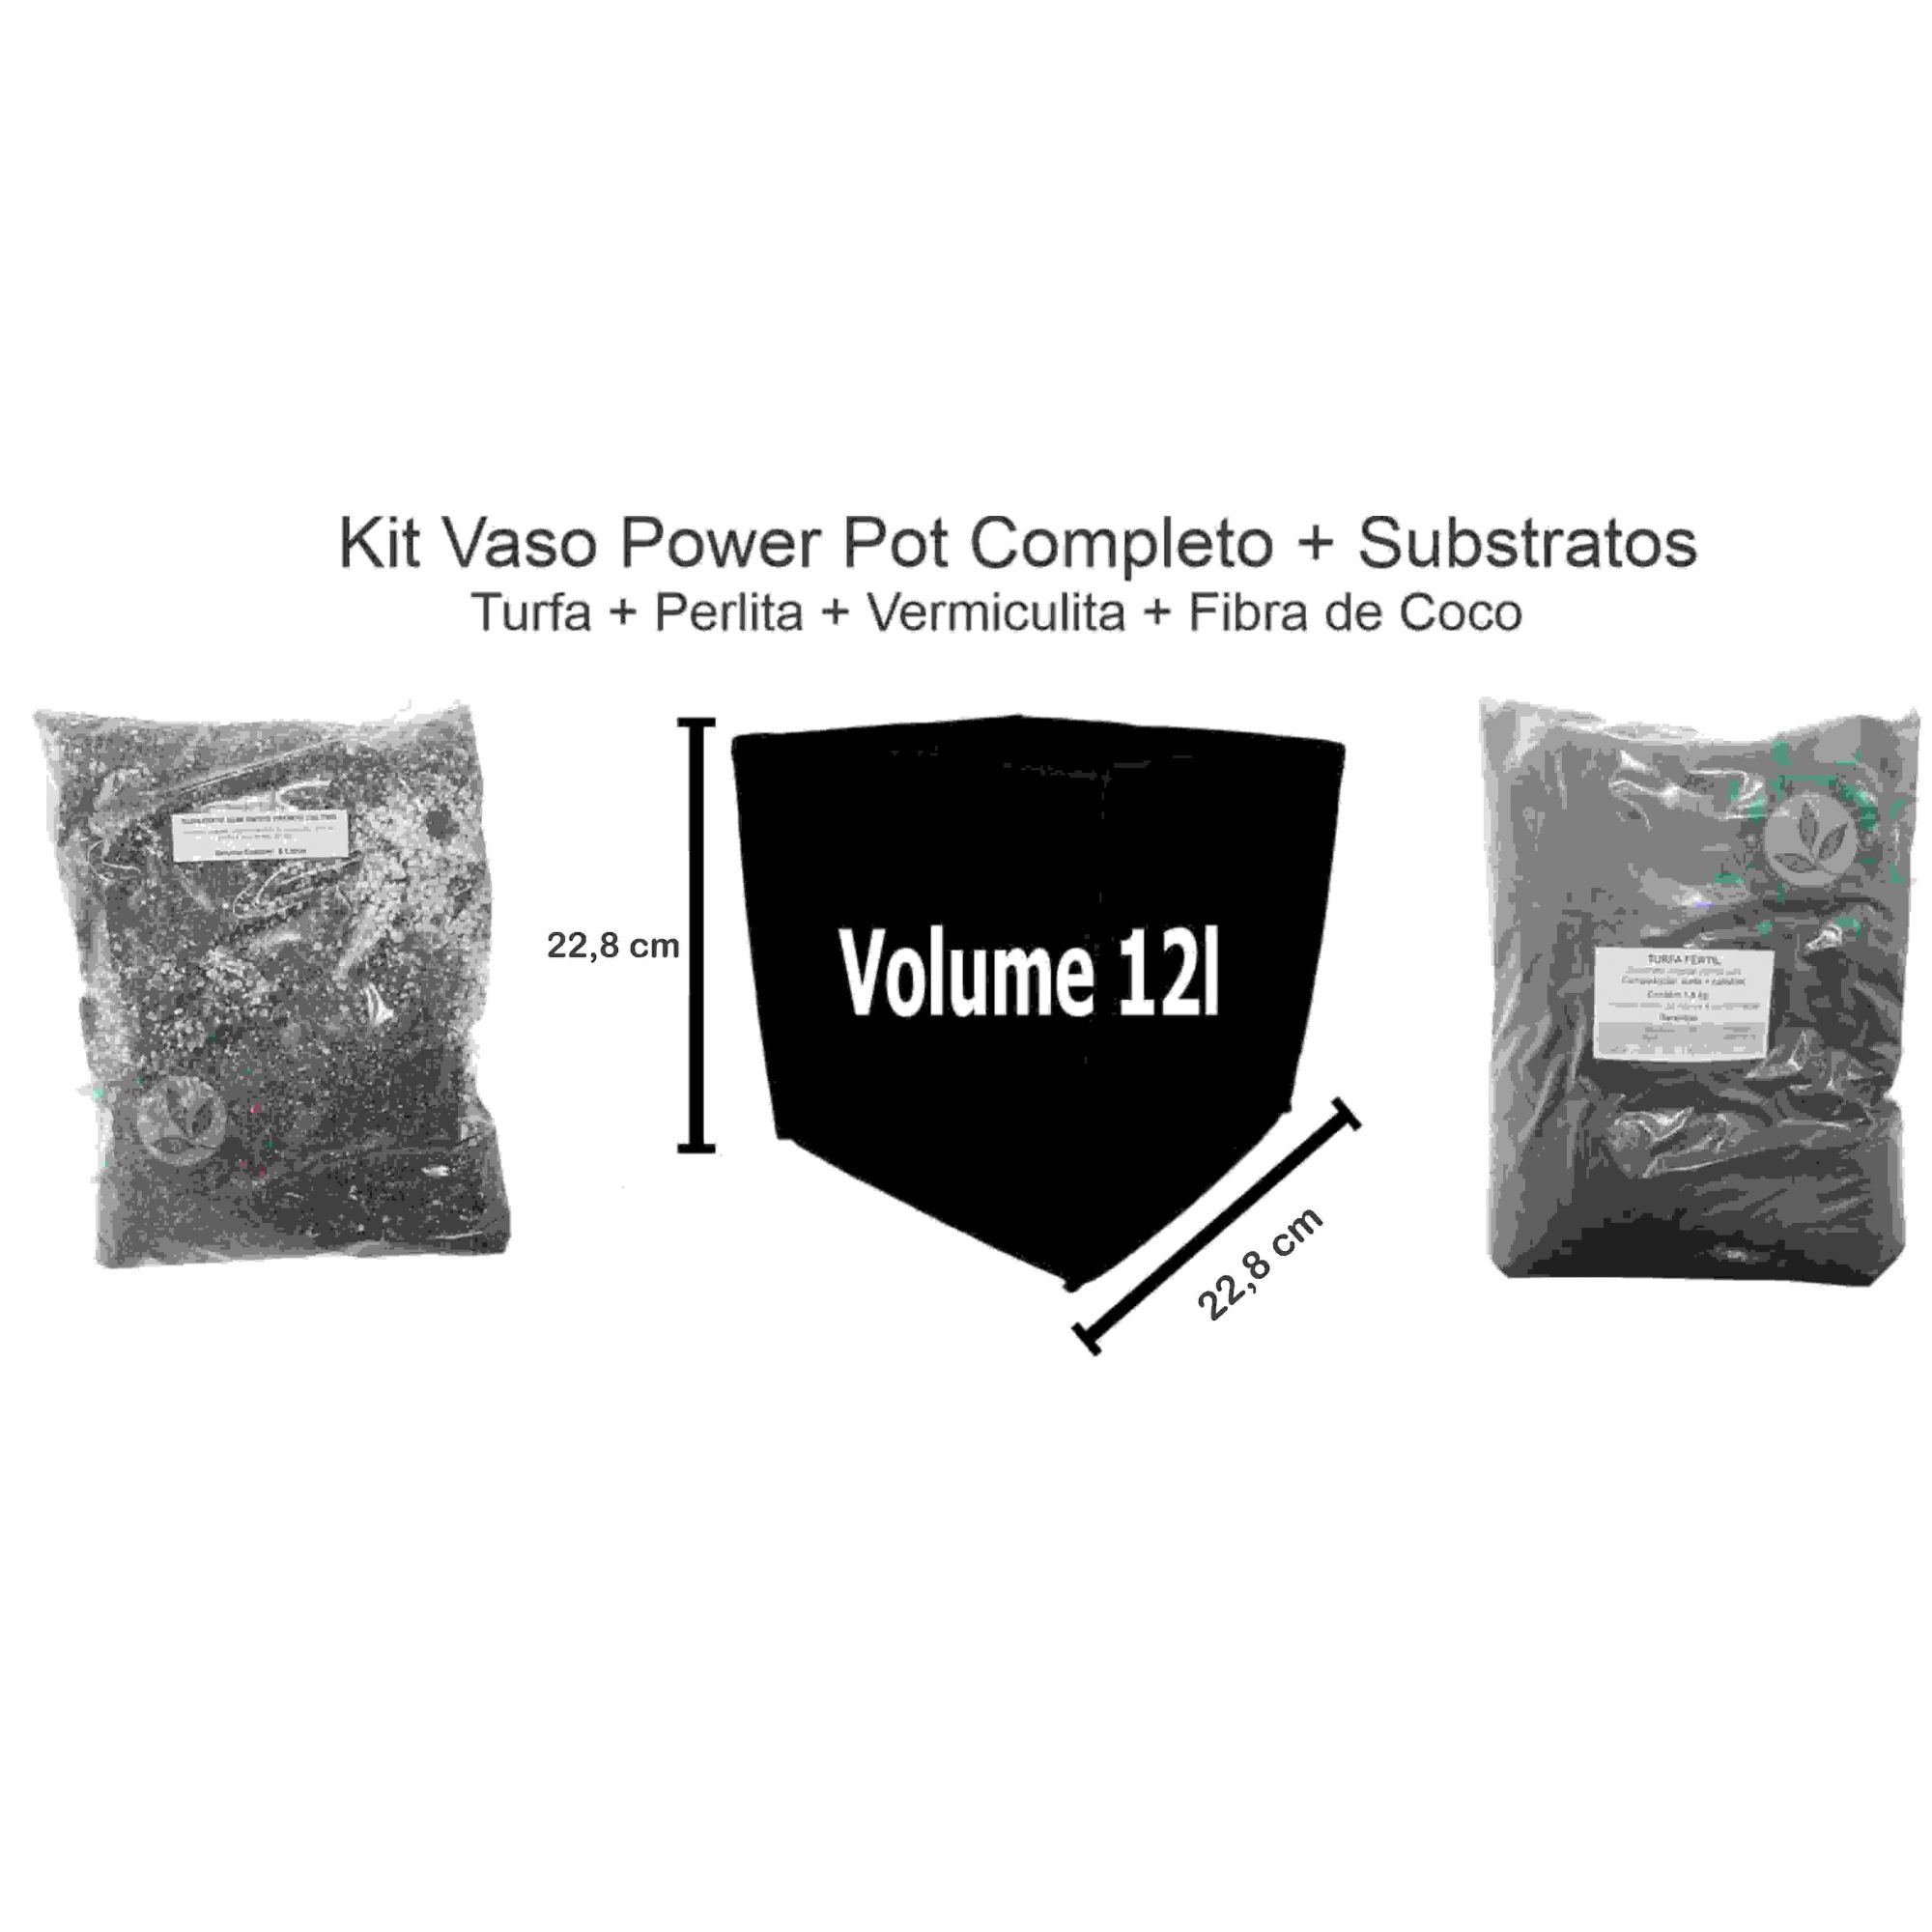 KIT VASO POWER POT 12L + SUBSTRATO POWER MIX E TURFA